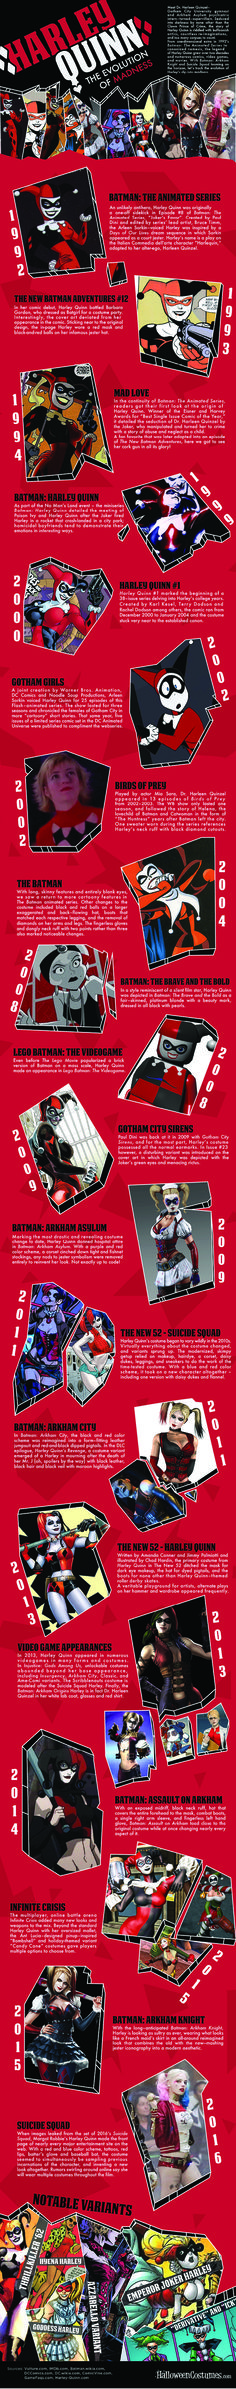 The Evolution of #HarleyQuinn [Infographic]